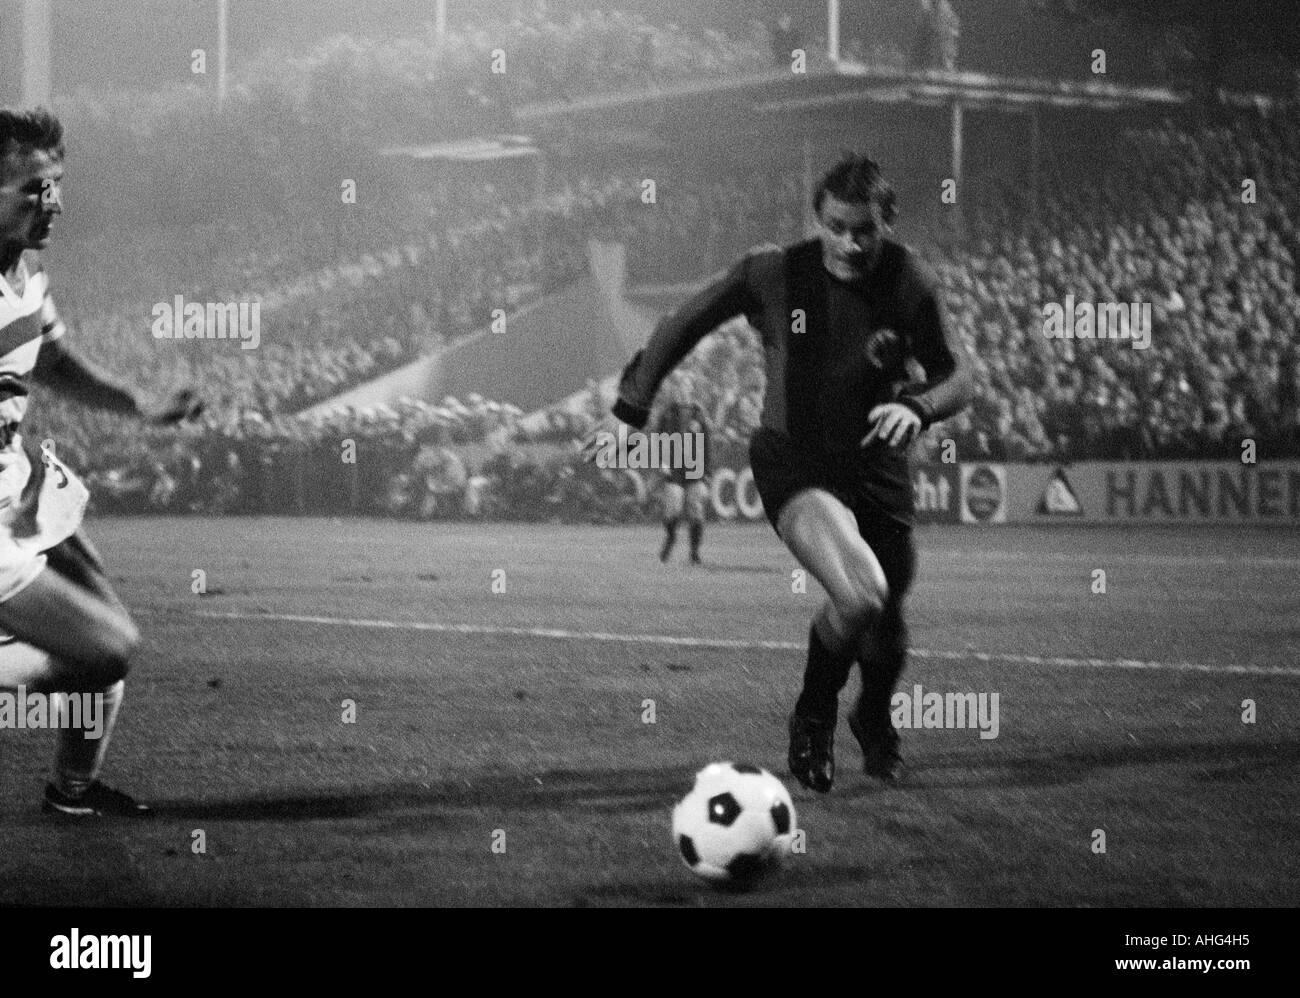 football, Bundesliga, 1967/1968, Wedau Stadium in Duisburg, MSV Duisburg versus Eintracht Frankfurt 0:1, scene of the match, duel between Manfred Mueller (MSV) left and Oskar Lotz (Frankfurt) - Stock Image